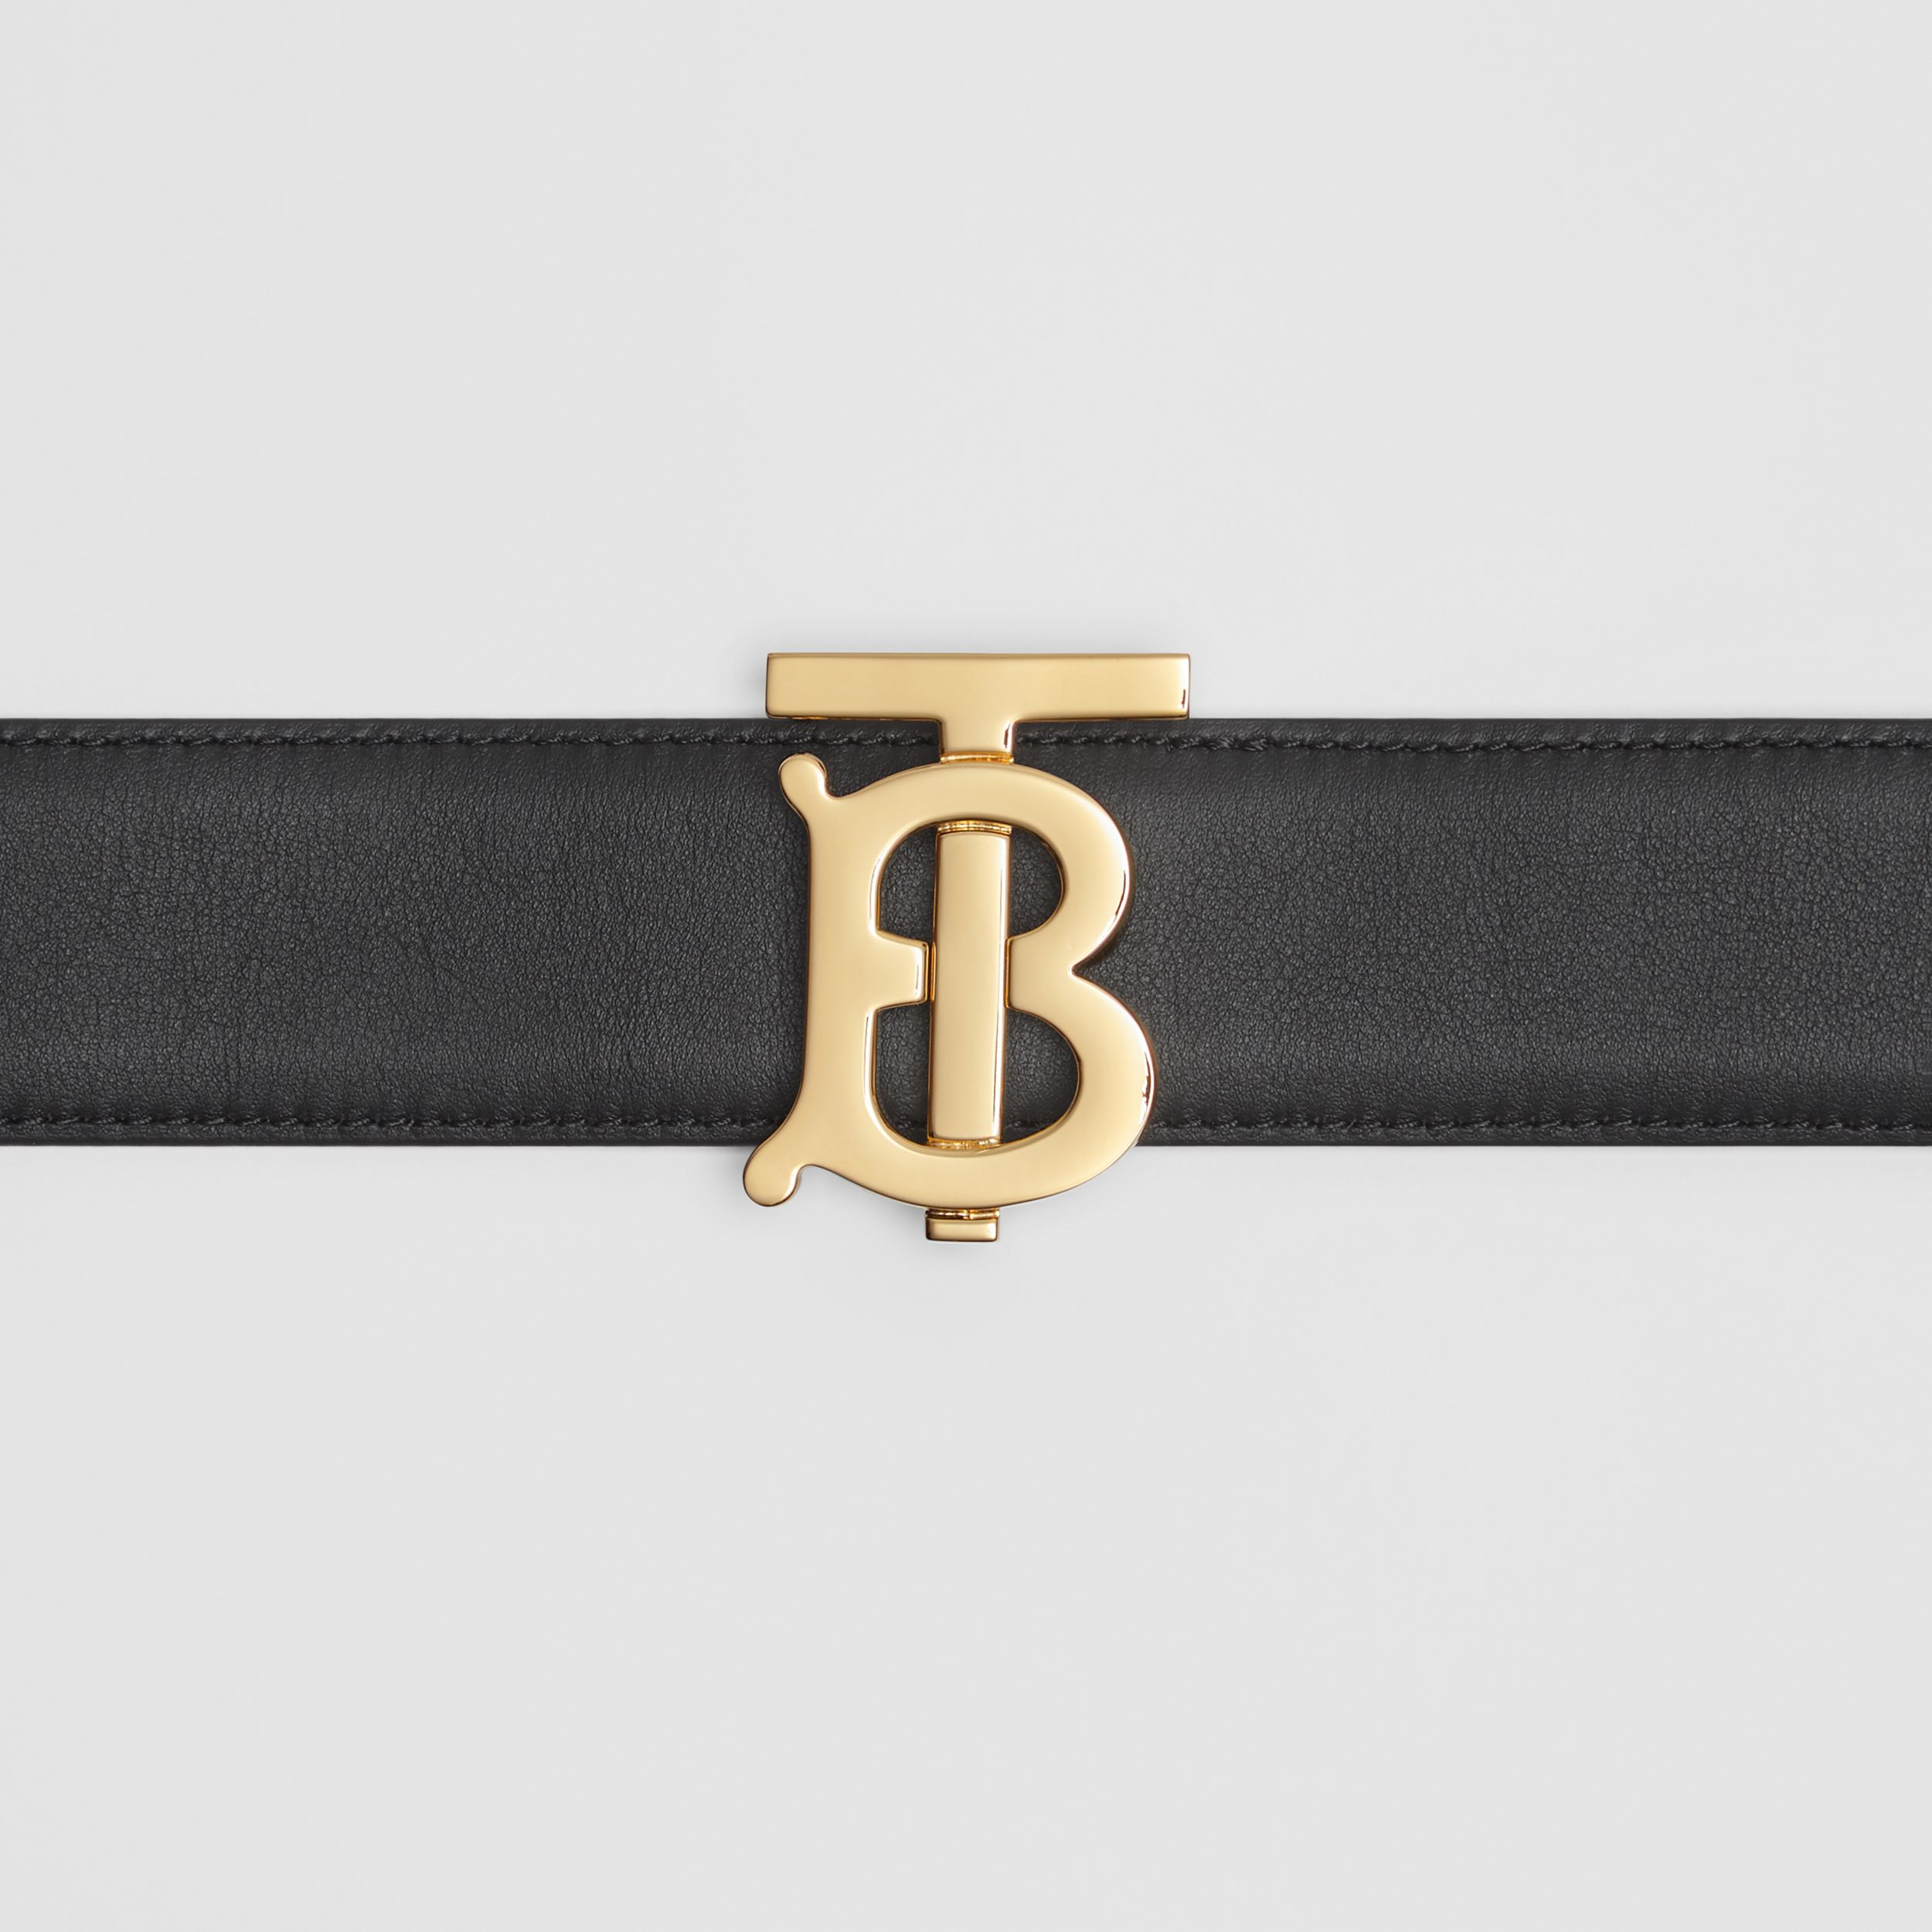 Reversible Monogram Motif Leather Belt in Black/malt Brown - Women | Burberry Hong Kong S.A.R. - 2